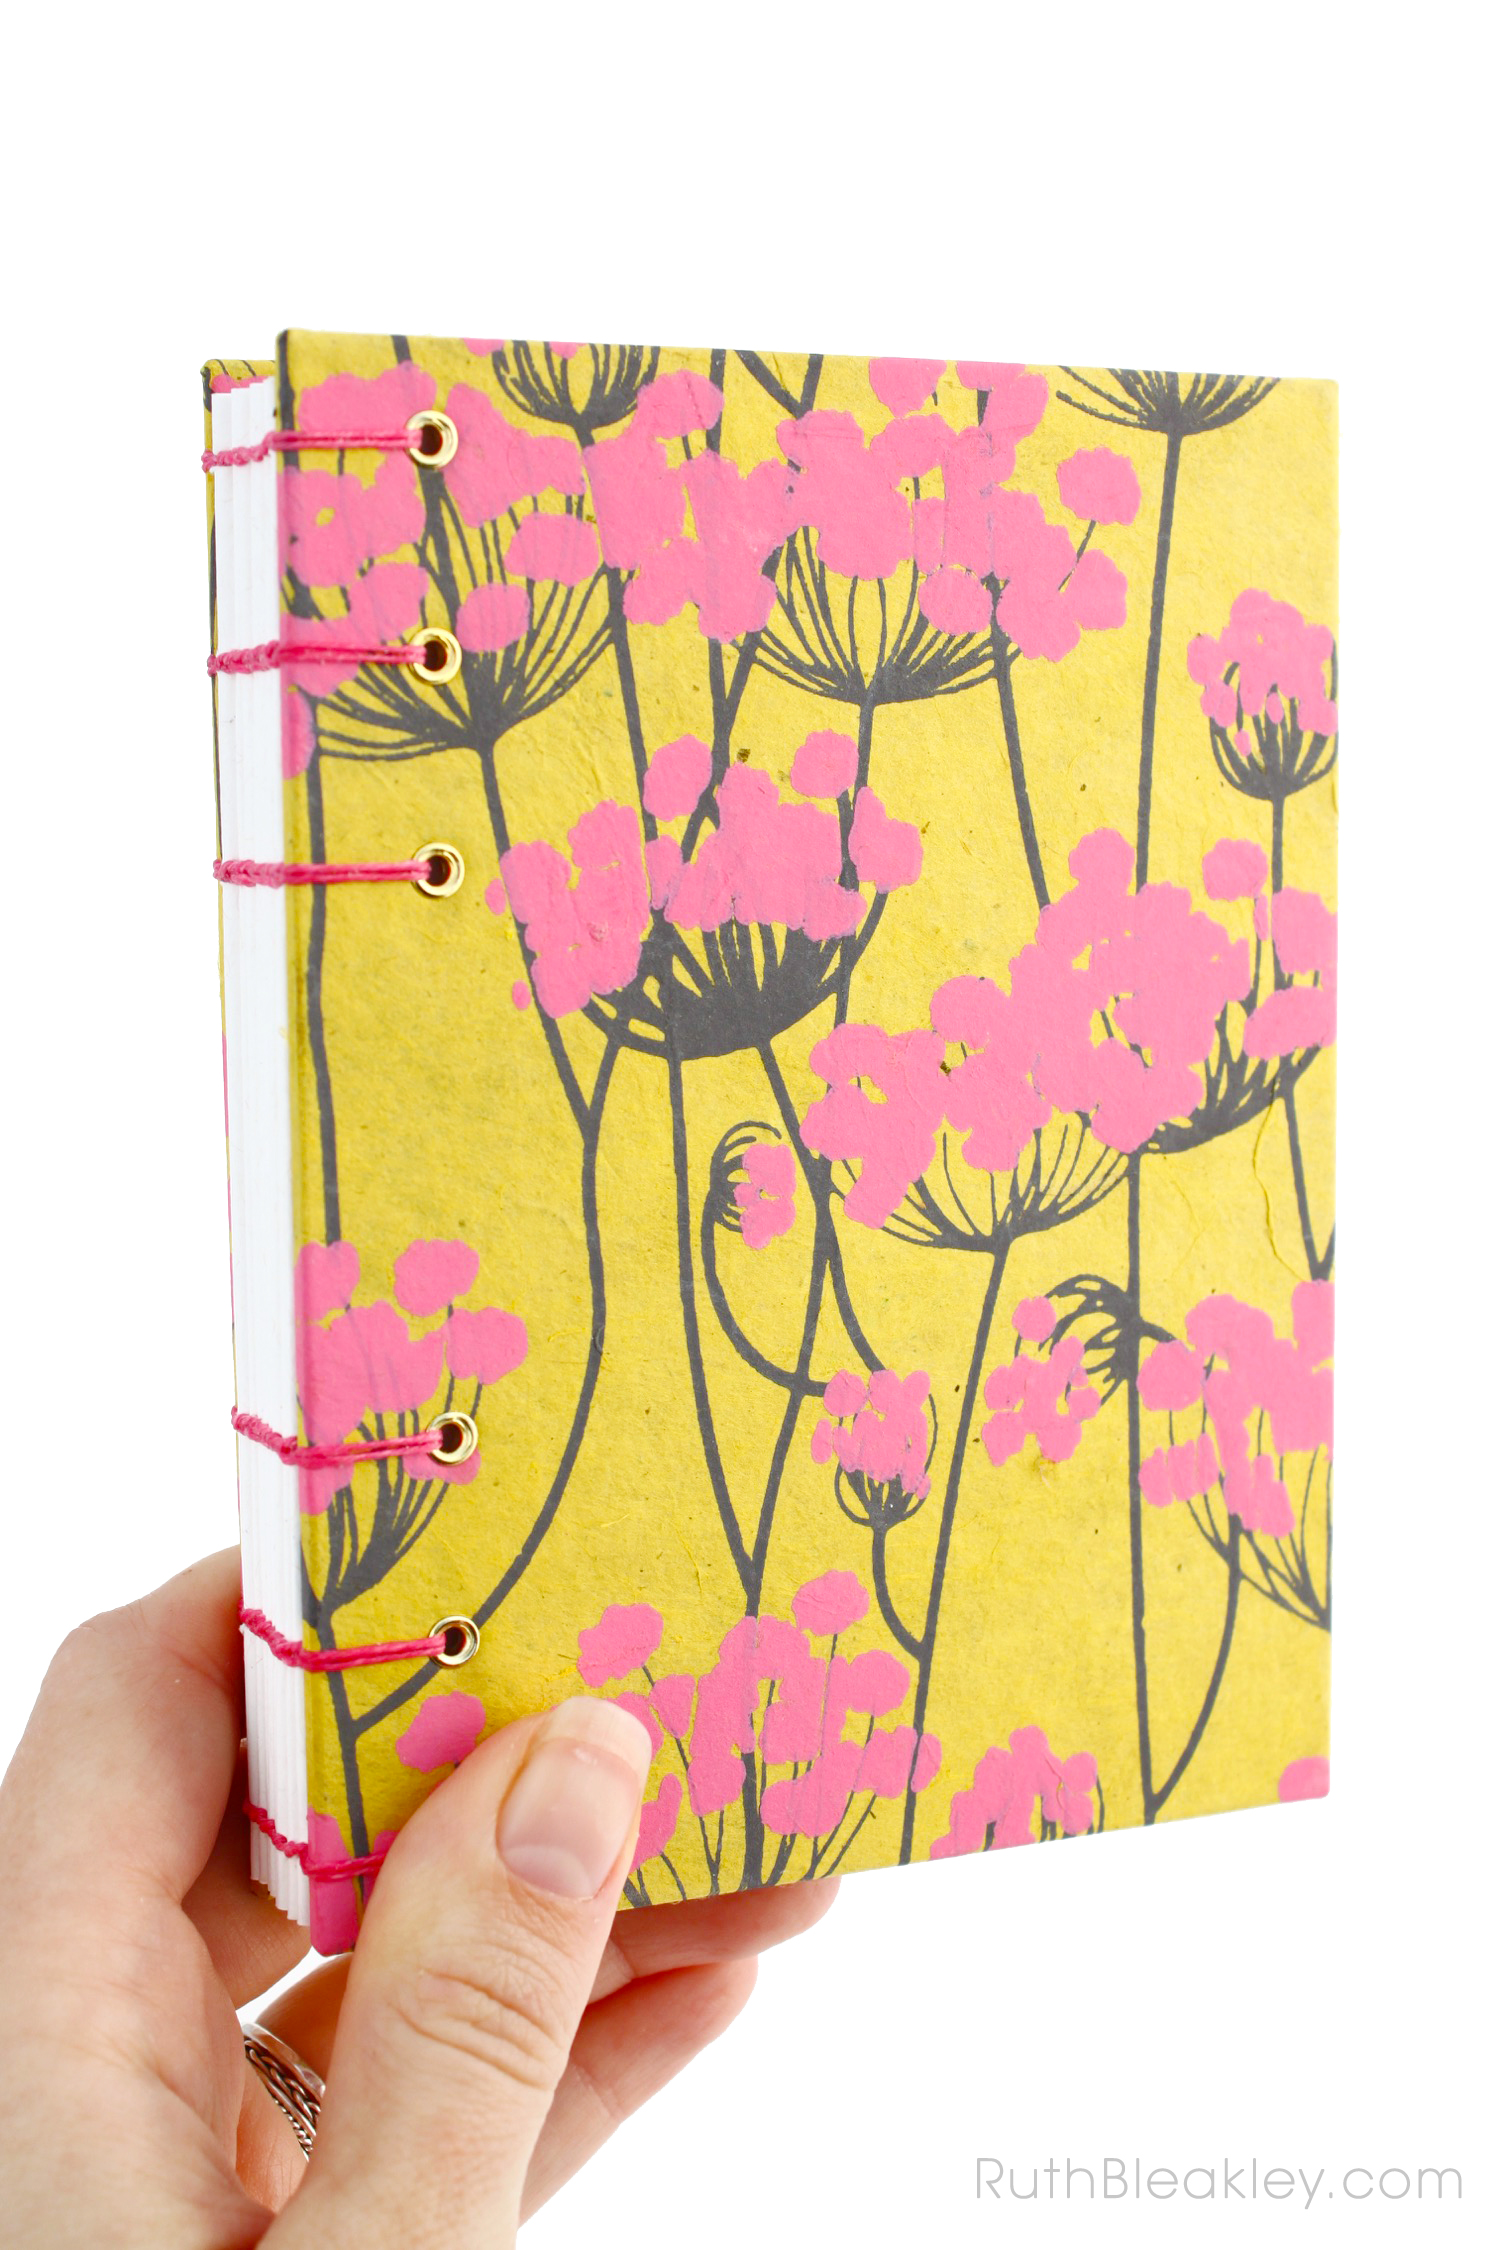 Unlined Blank Sketch Journal handmade by Ruth Bleakley from Indian floral paper - yellow and pink